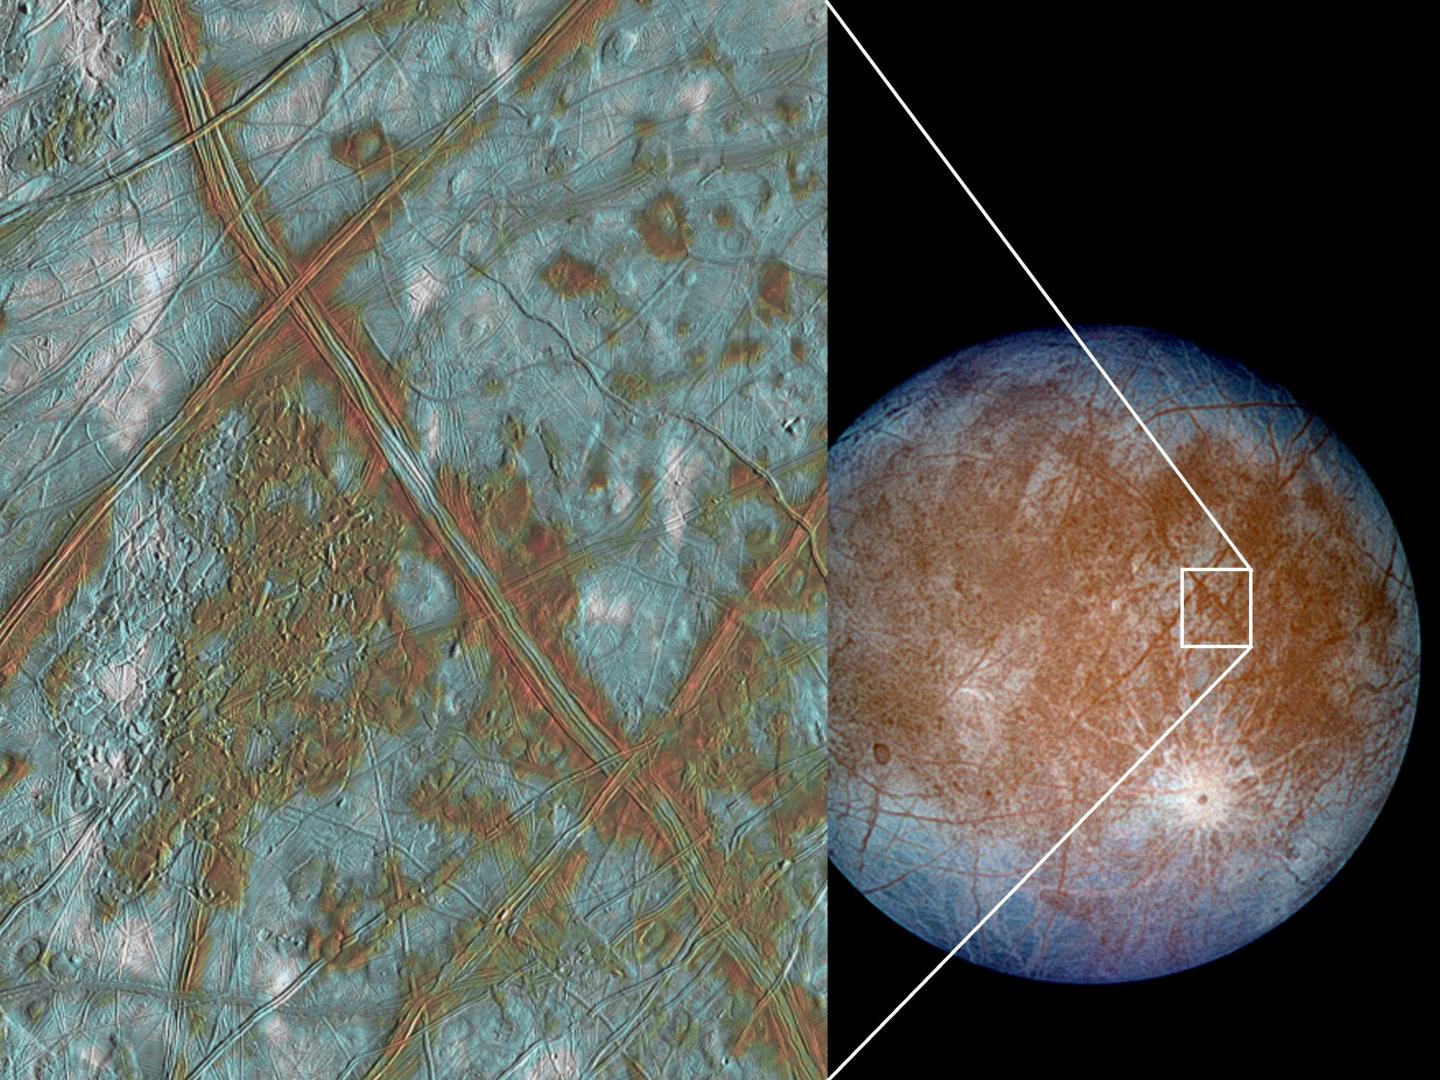 As the moon Europa's icy shell is pushed and pulled by Jupiter's gravity, it heaves up and down. That process creates enough heat, scientists think, to create a global subsurface ocean on Europa. Experiments by Brown University researchers suggests that this heating process, known as tidal dissipation, creates more heat in ice that scientists have generally assumed. The insight could help scientists model the thickness of Europa's icy shell. – Image Credit: NASA/JPL